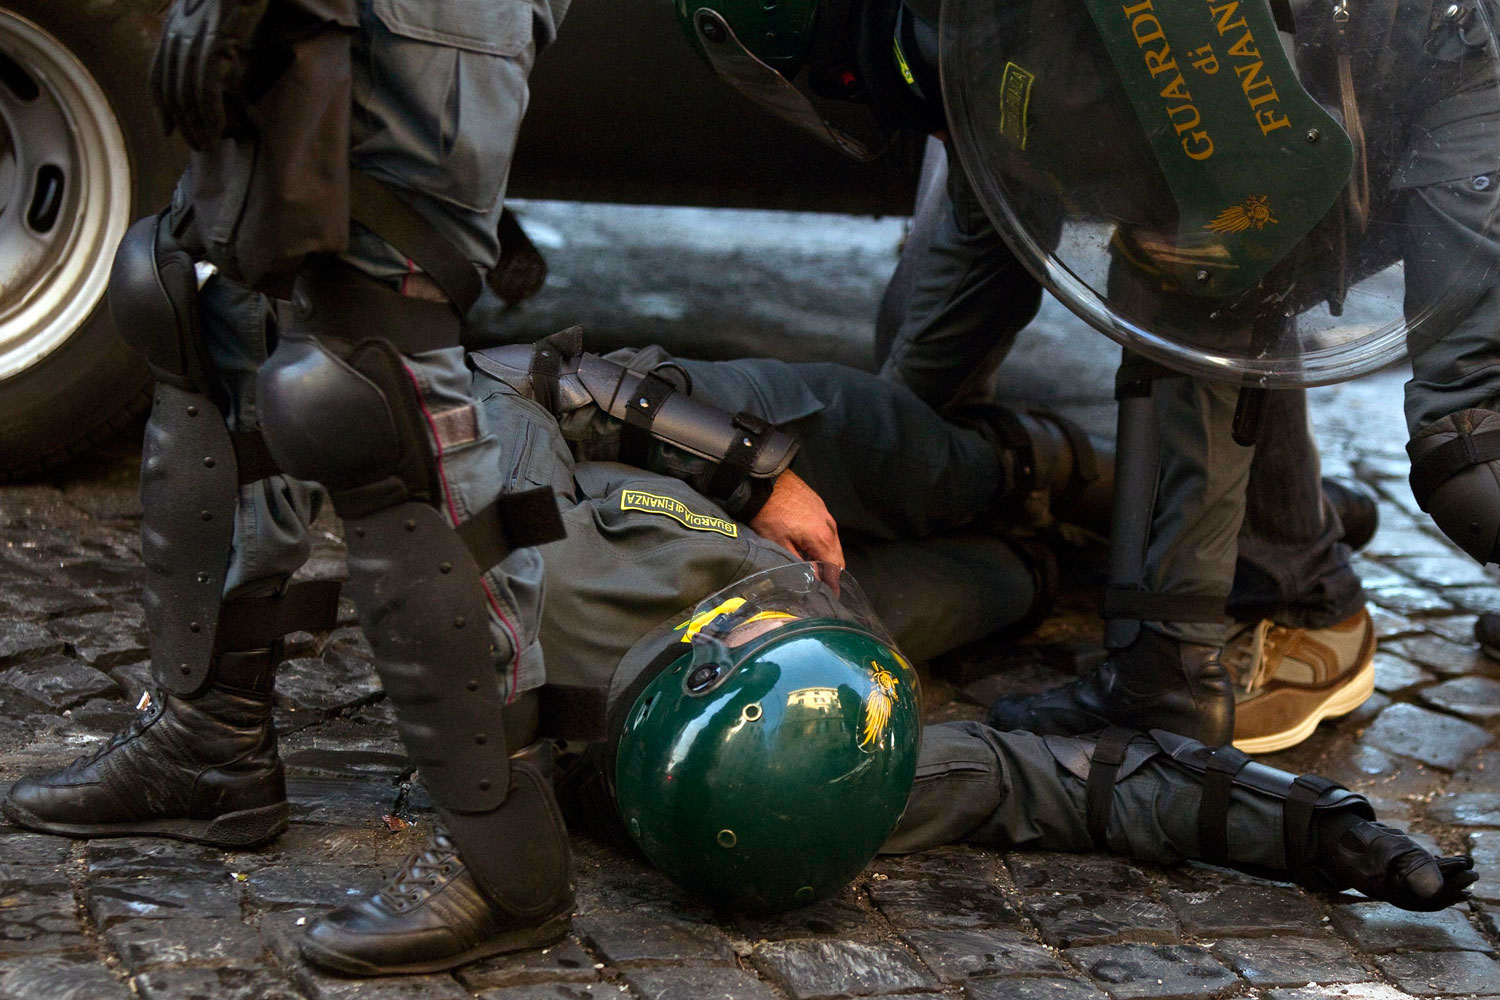 October 15, 2011. A tax police officer is helped by colleagues as he lies on the ground during clashes in Rome. Italian police fired tear gas and water cannons as protesters in Rome turned a demonstration against corporate greed into a riot, smashing shop and bank windows, torching cars and hurling bottles. The protest in the Italian capital was part of  Occupy Wall Street  demonstrations against capitalism and austerity measures that went global, leading to dozens of marches and protests worldwide.